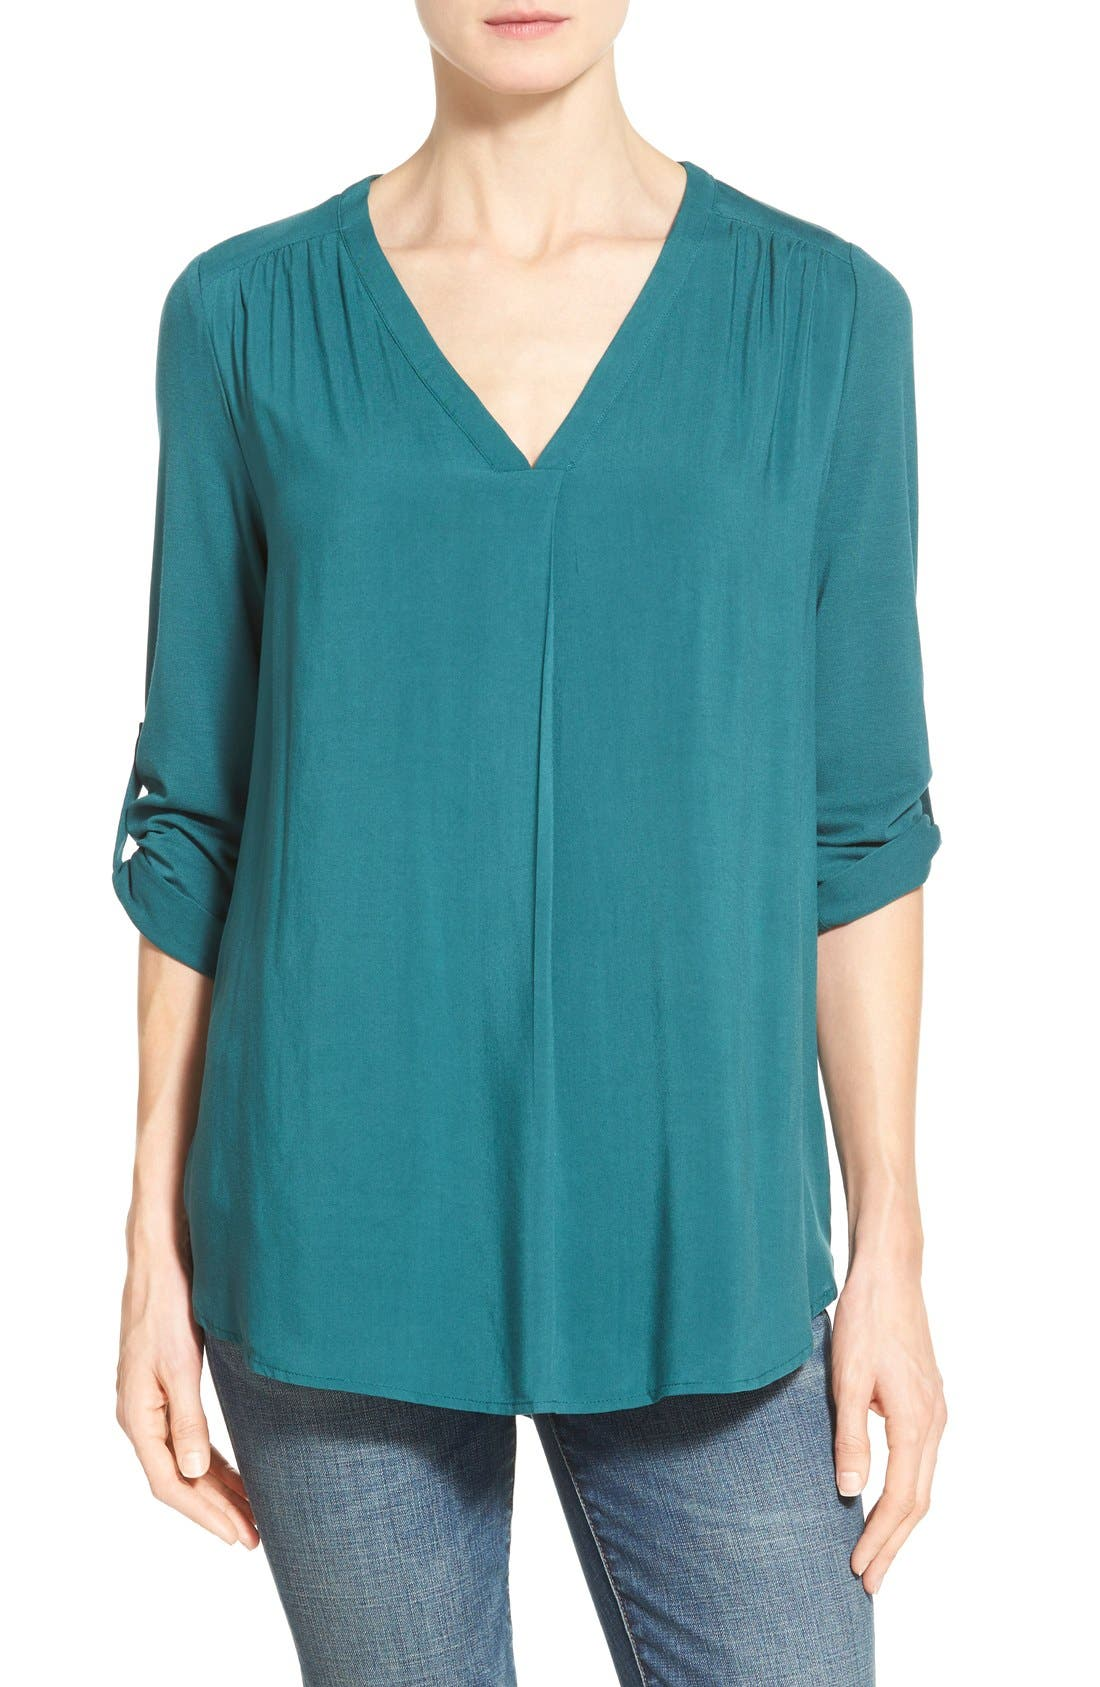 Main Image - Pleione Mixed Media V-Neck Tunic (Regular & Petite) (Nordstrom Exclusive)